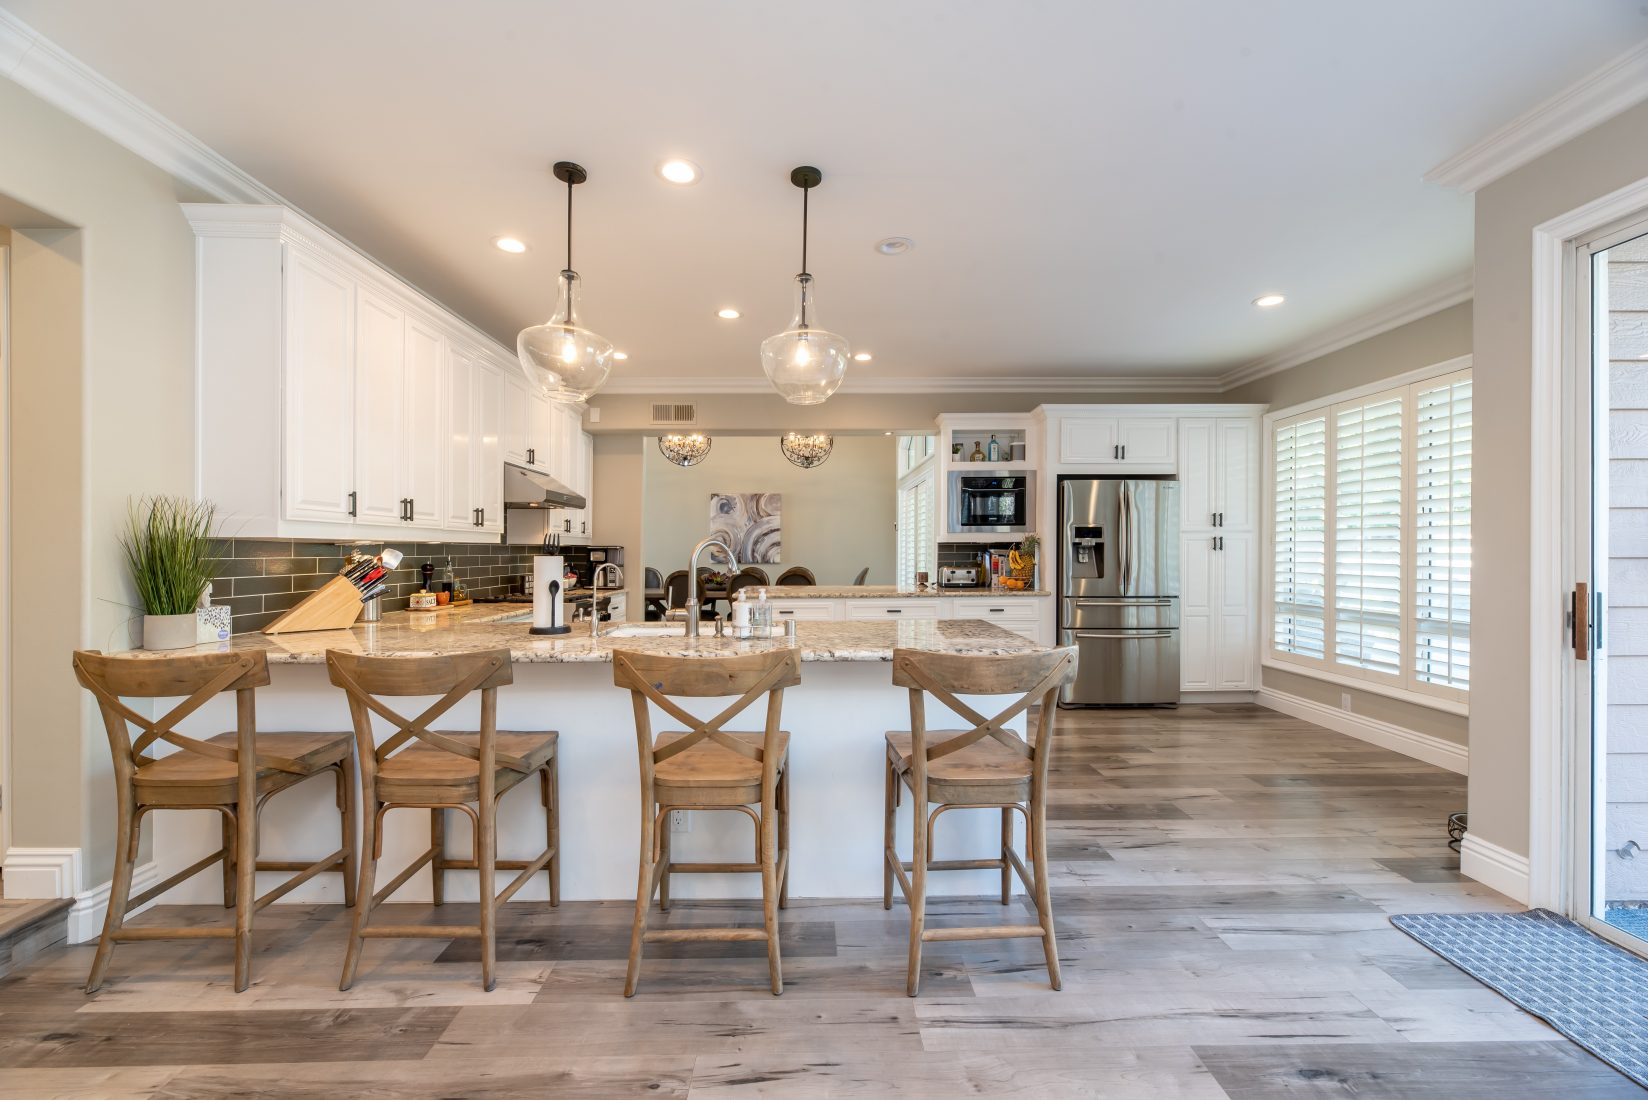 Home Tips By Duce Construction For Severe Winter Weather